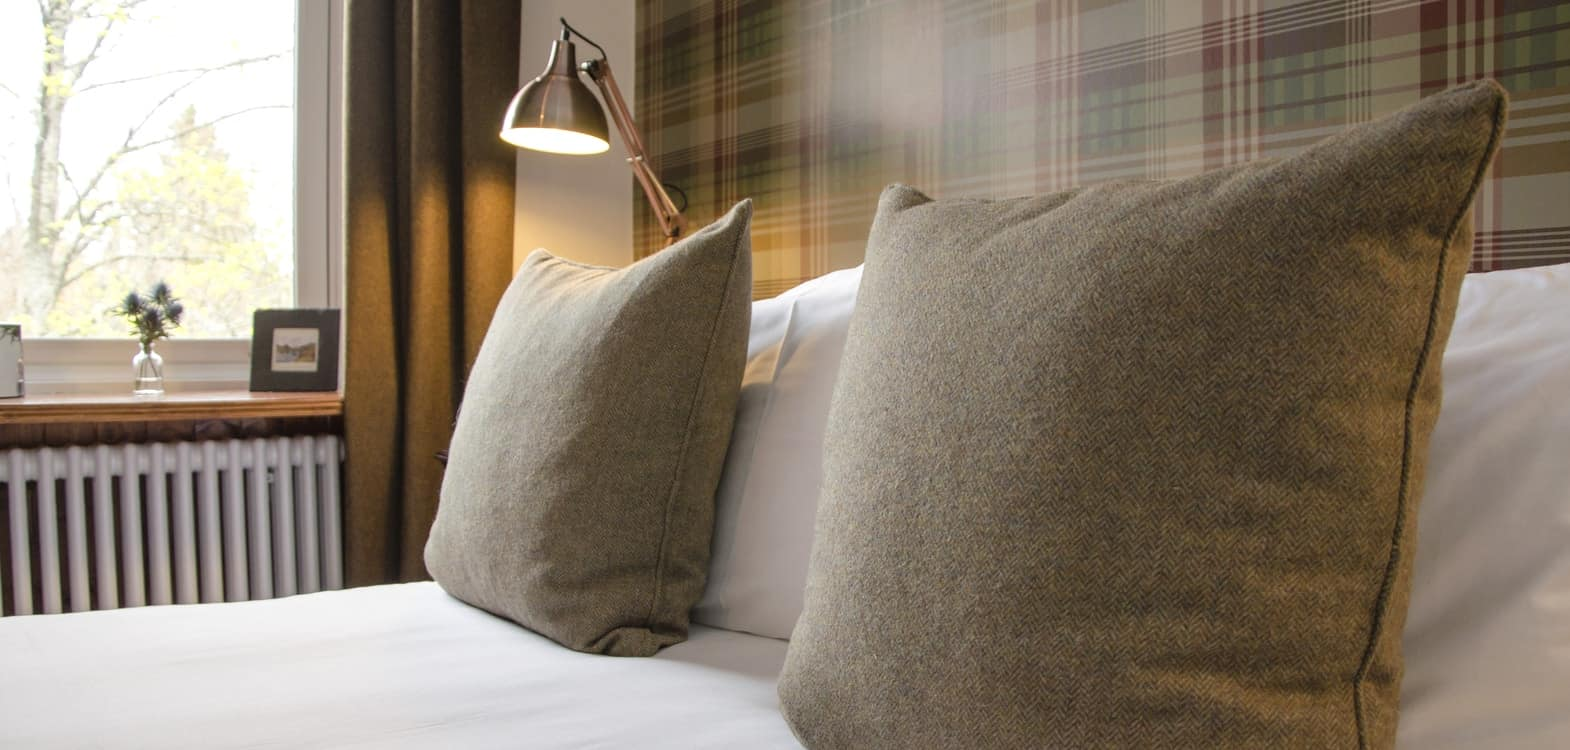 close up of natural colour wool covered cushions on a made up bed in Firhall B&B Scotland